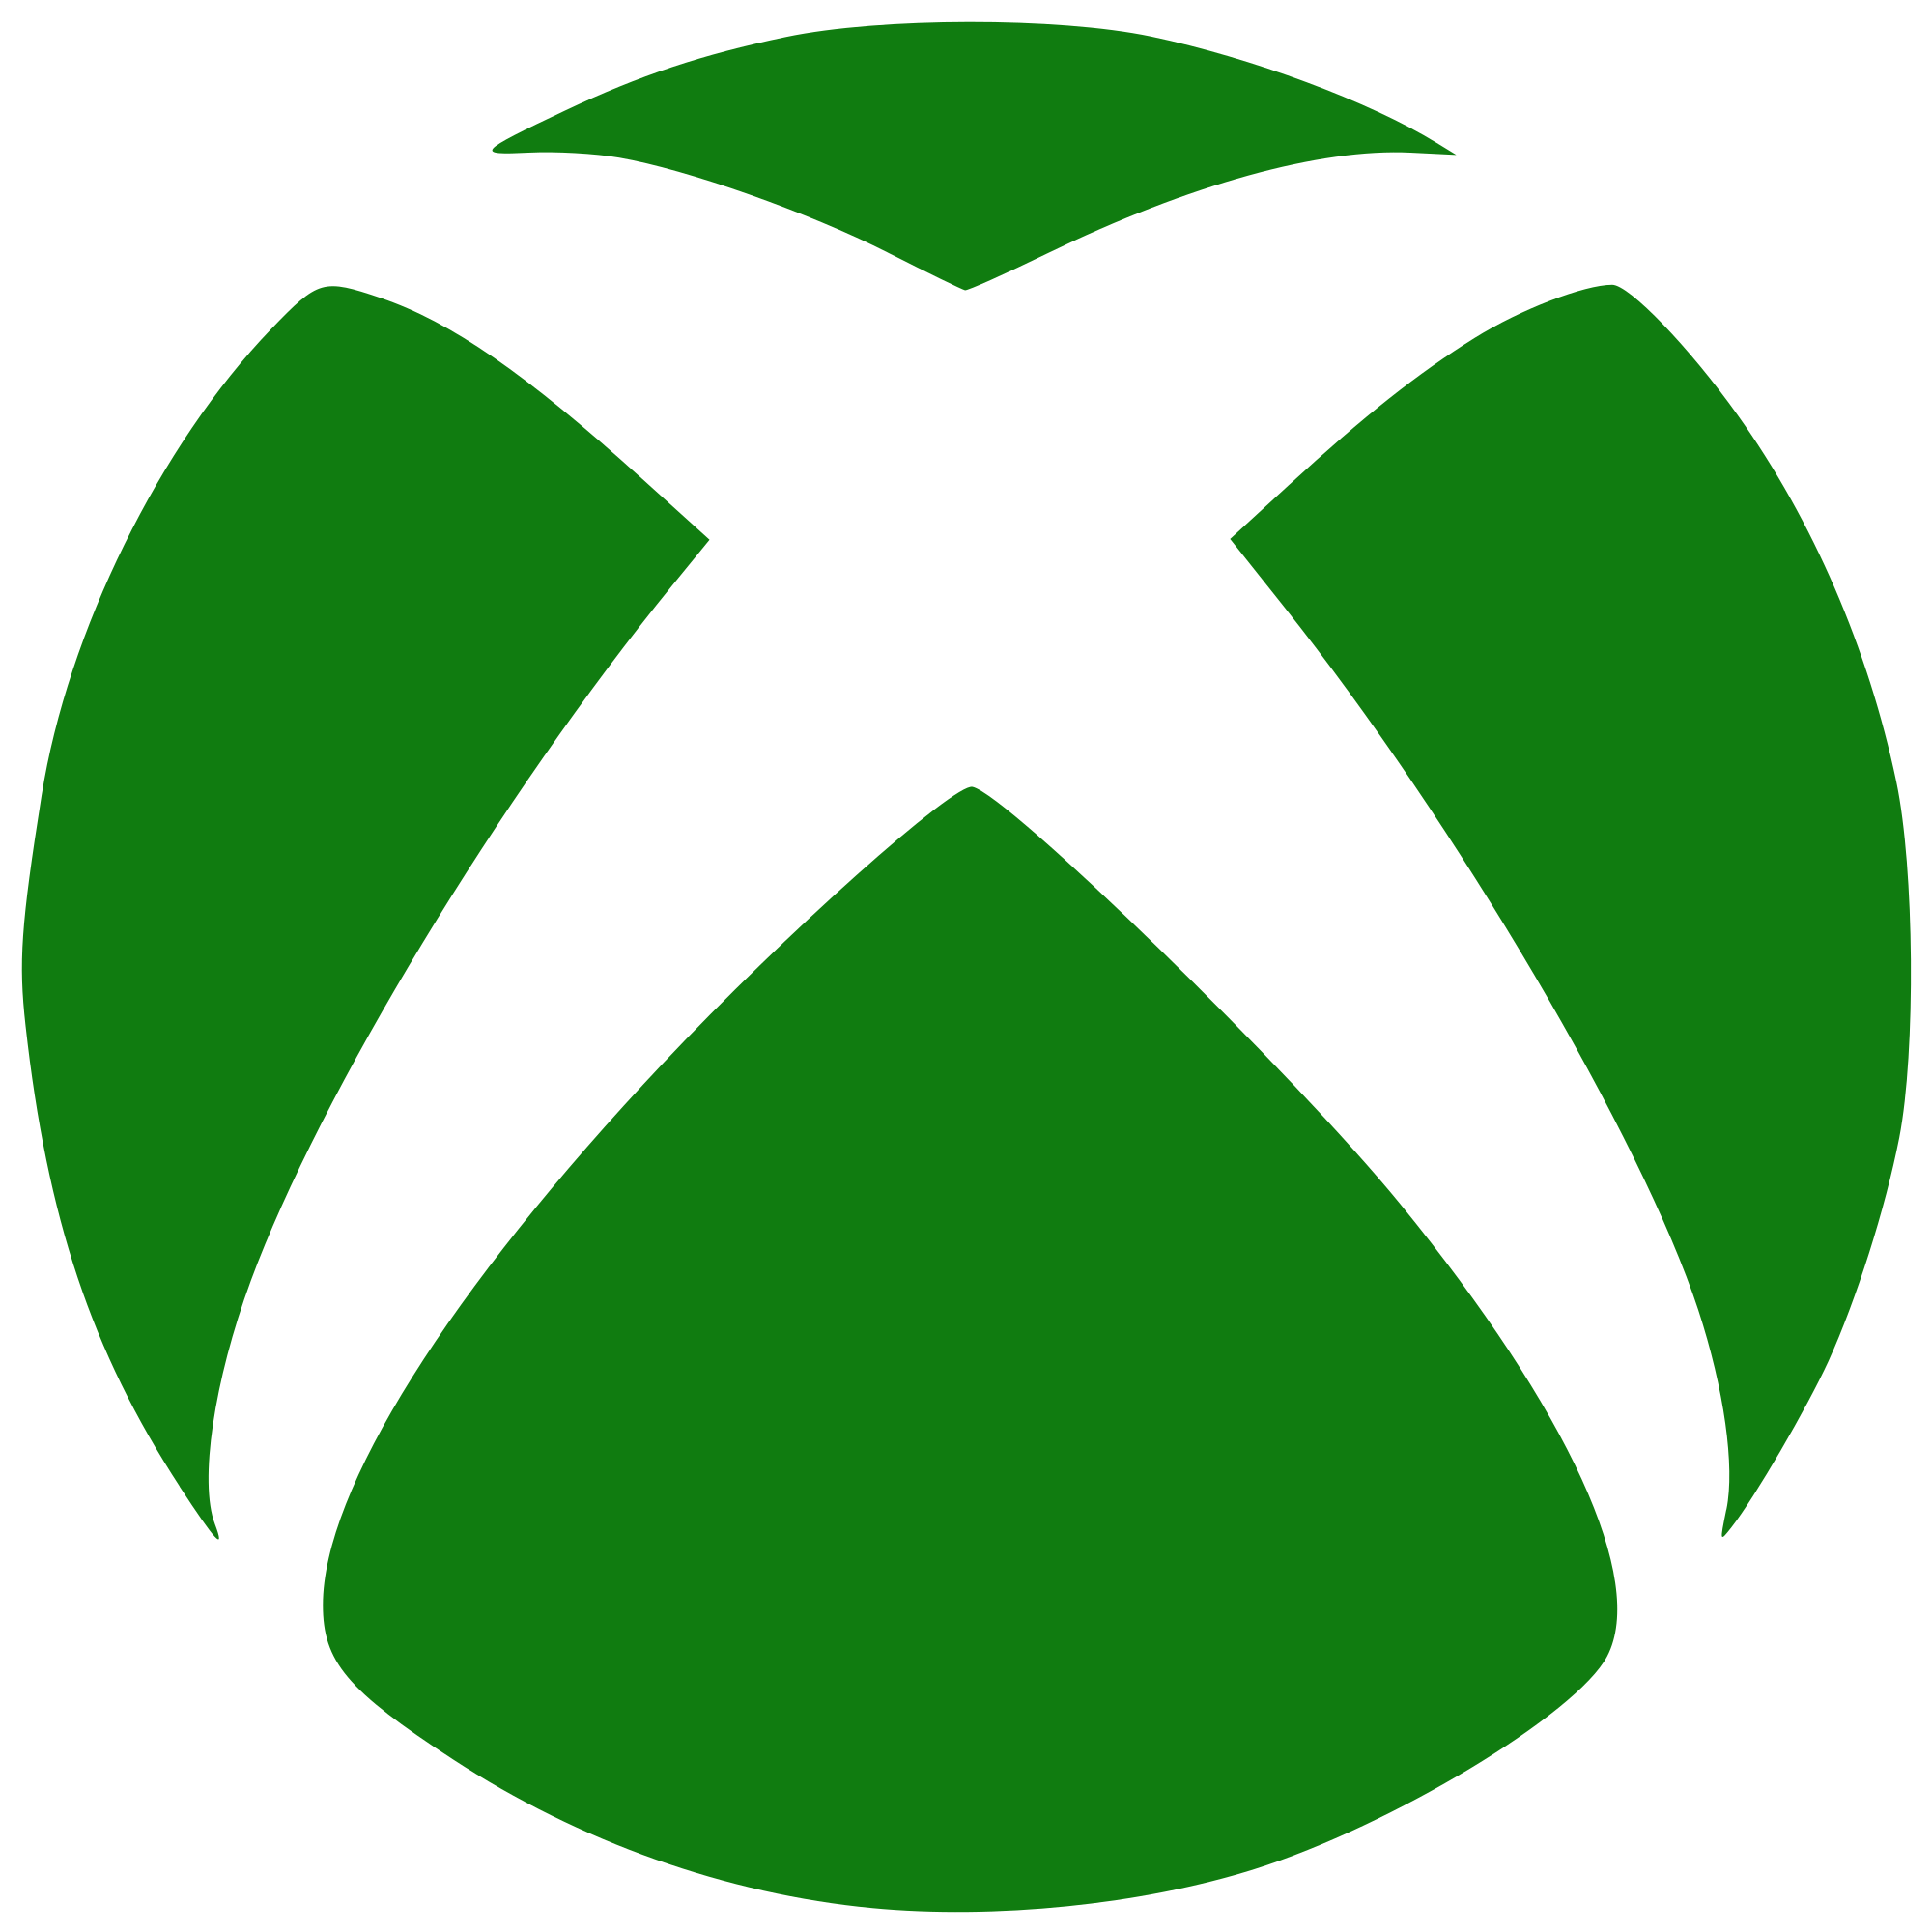 logo xbox one png